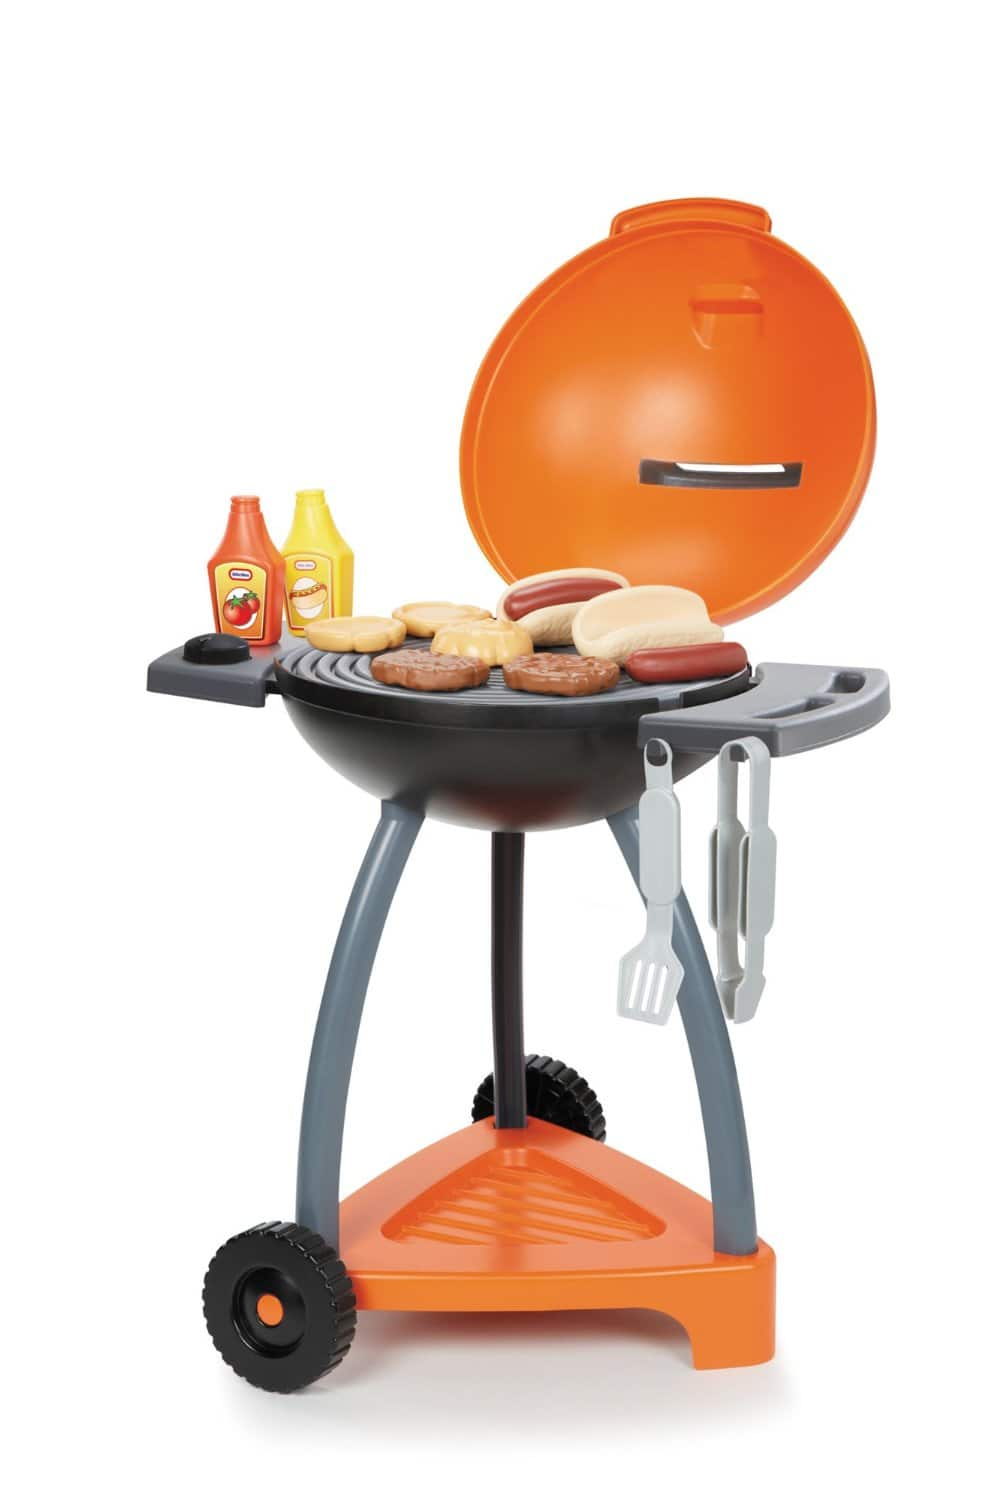 Little Tikes Sizzle & Serve Grill for $18 with free shipping *Kohl's Cardholders*